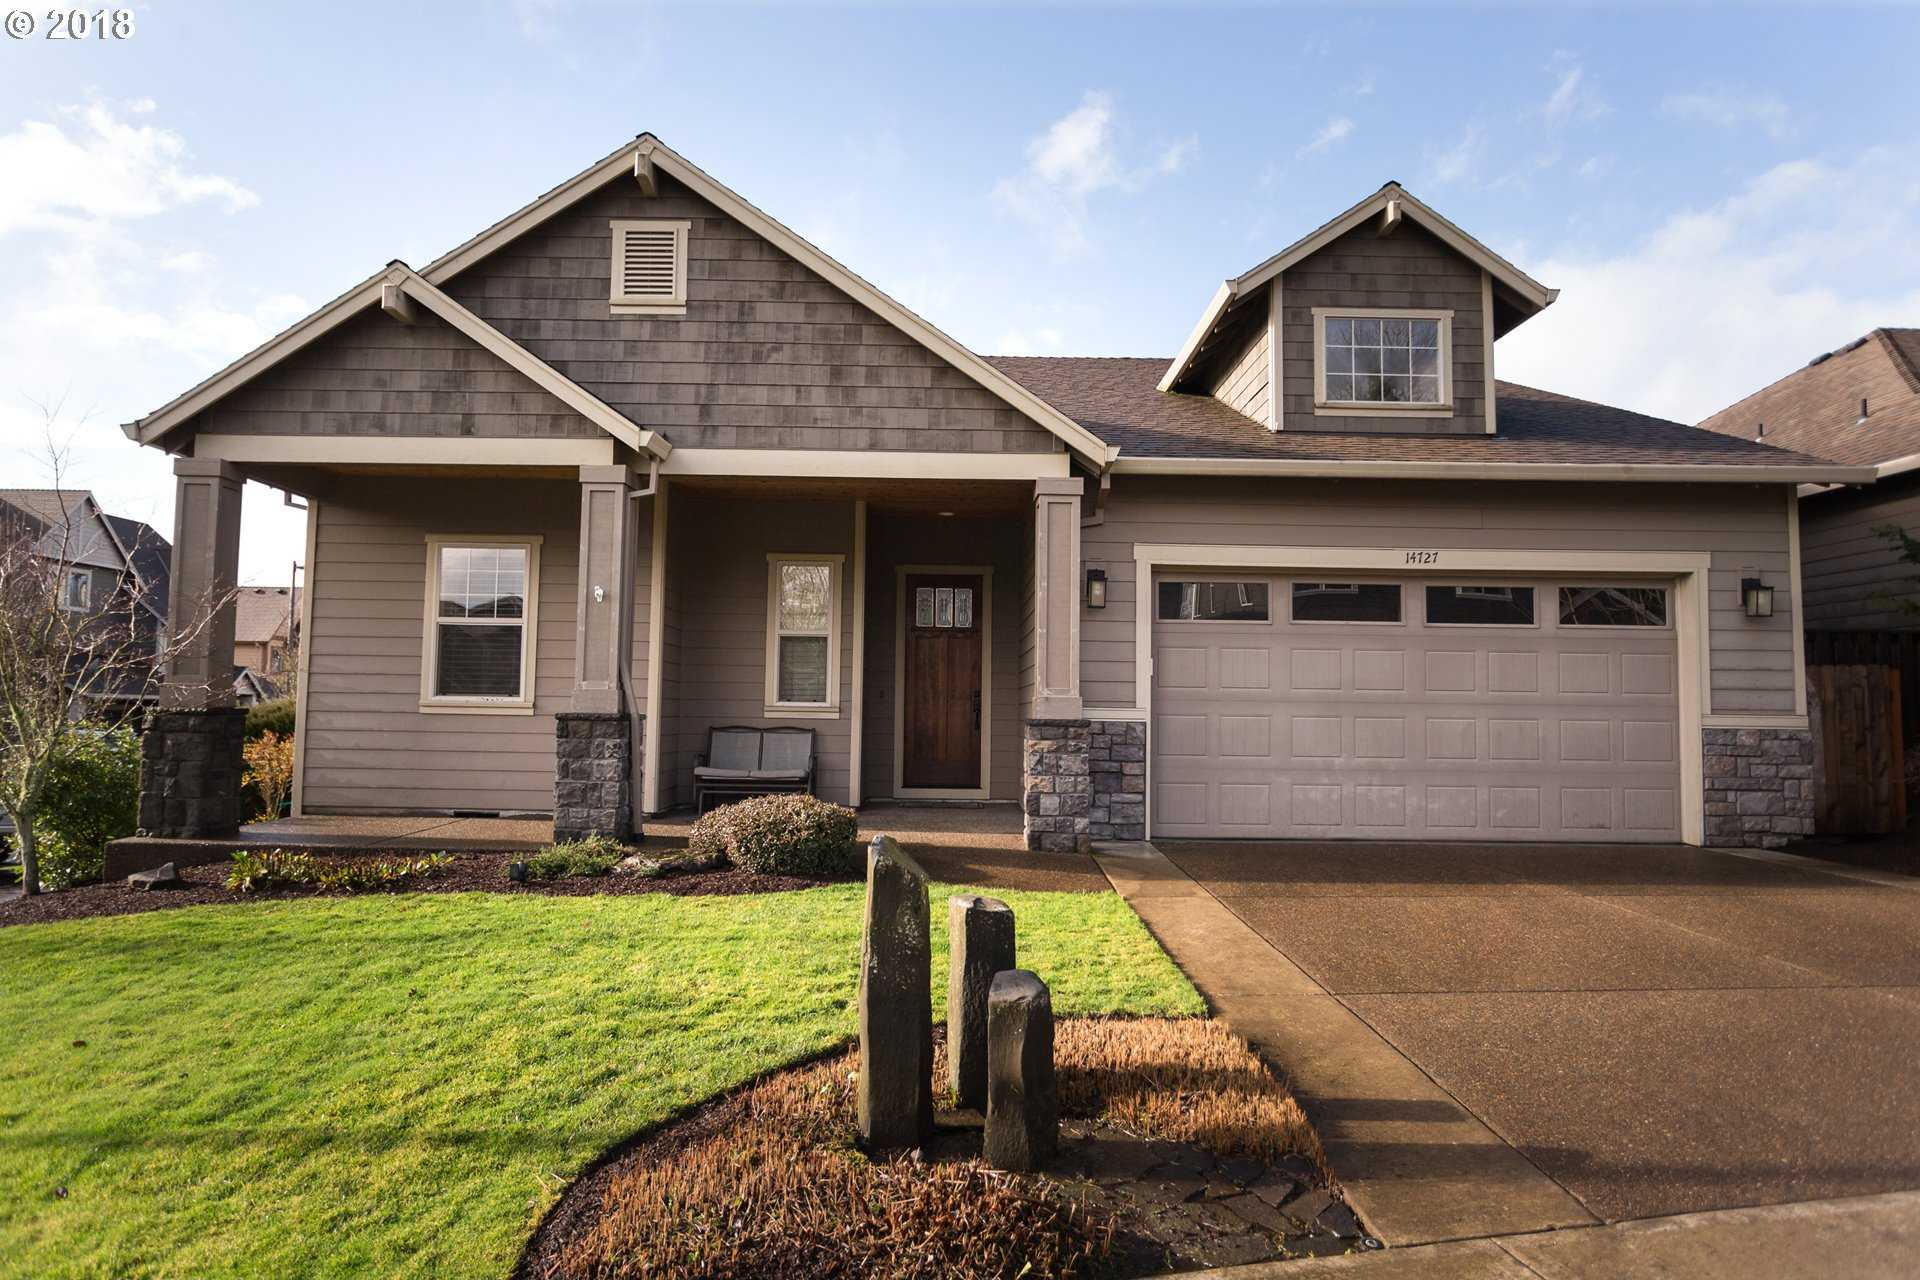 $550,000 - 3Br/2Ba -  for Sale in French Prairie Vineyards, Tigard